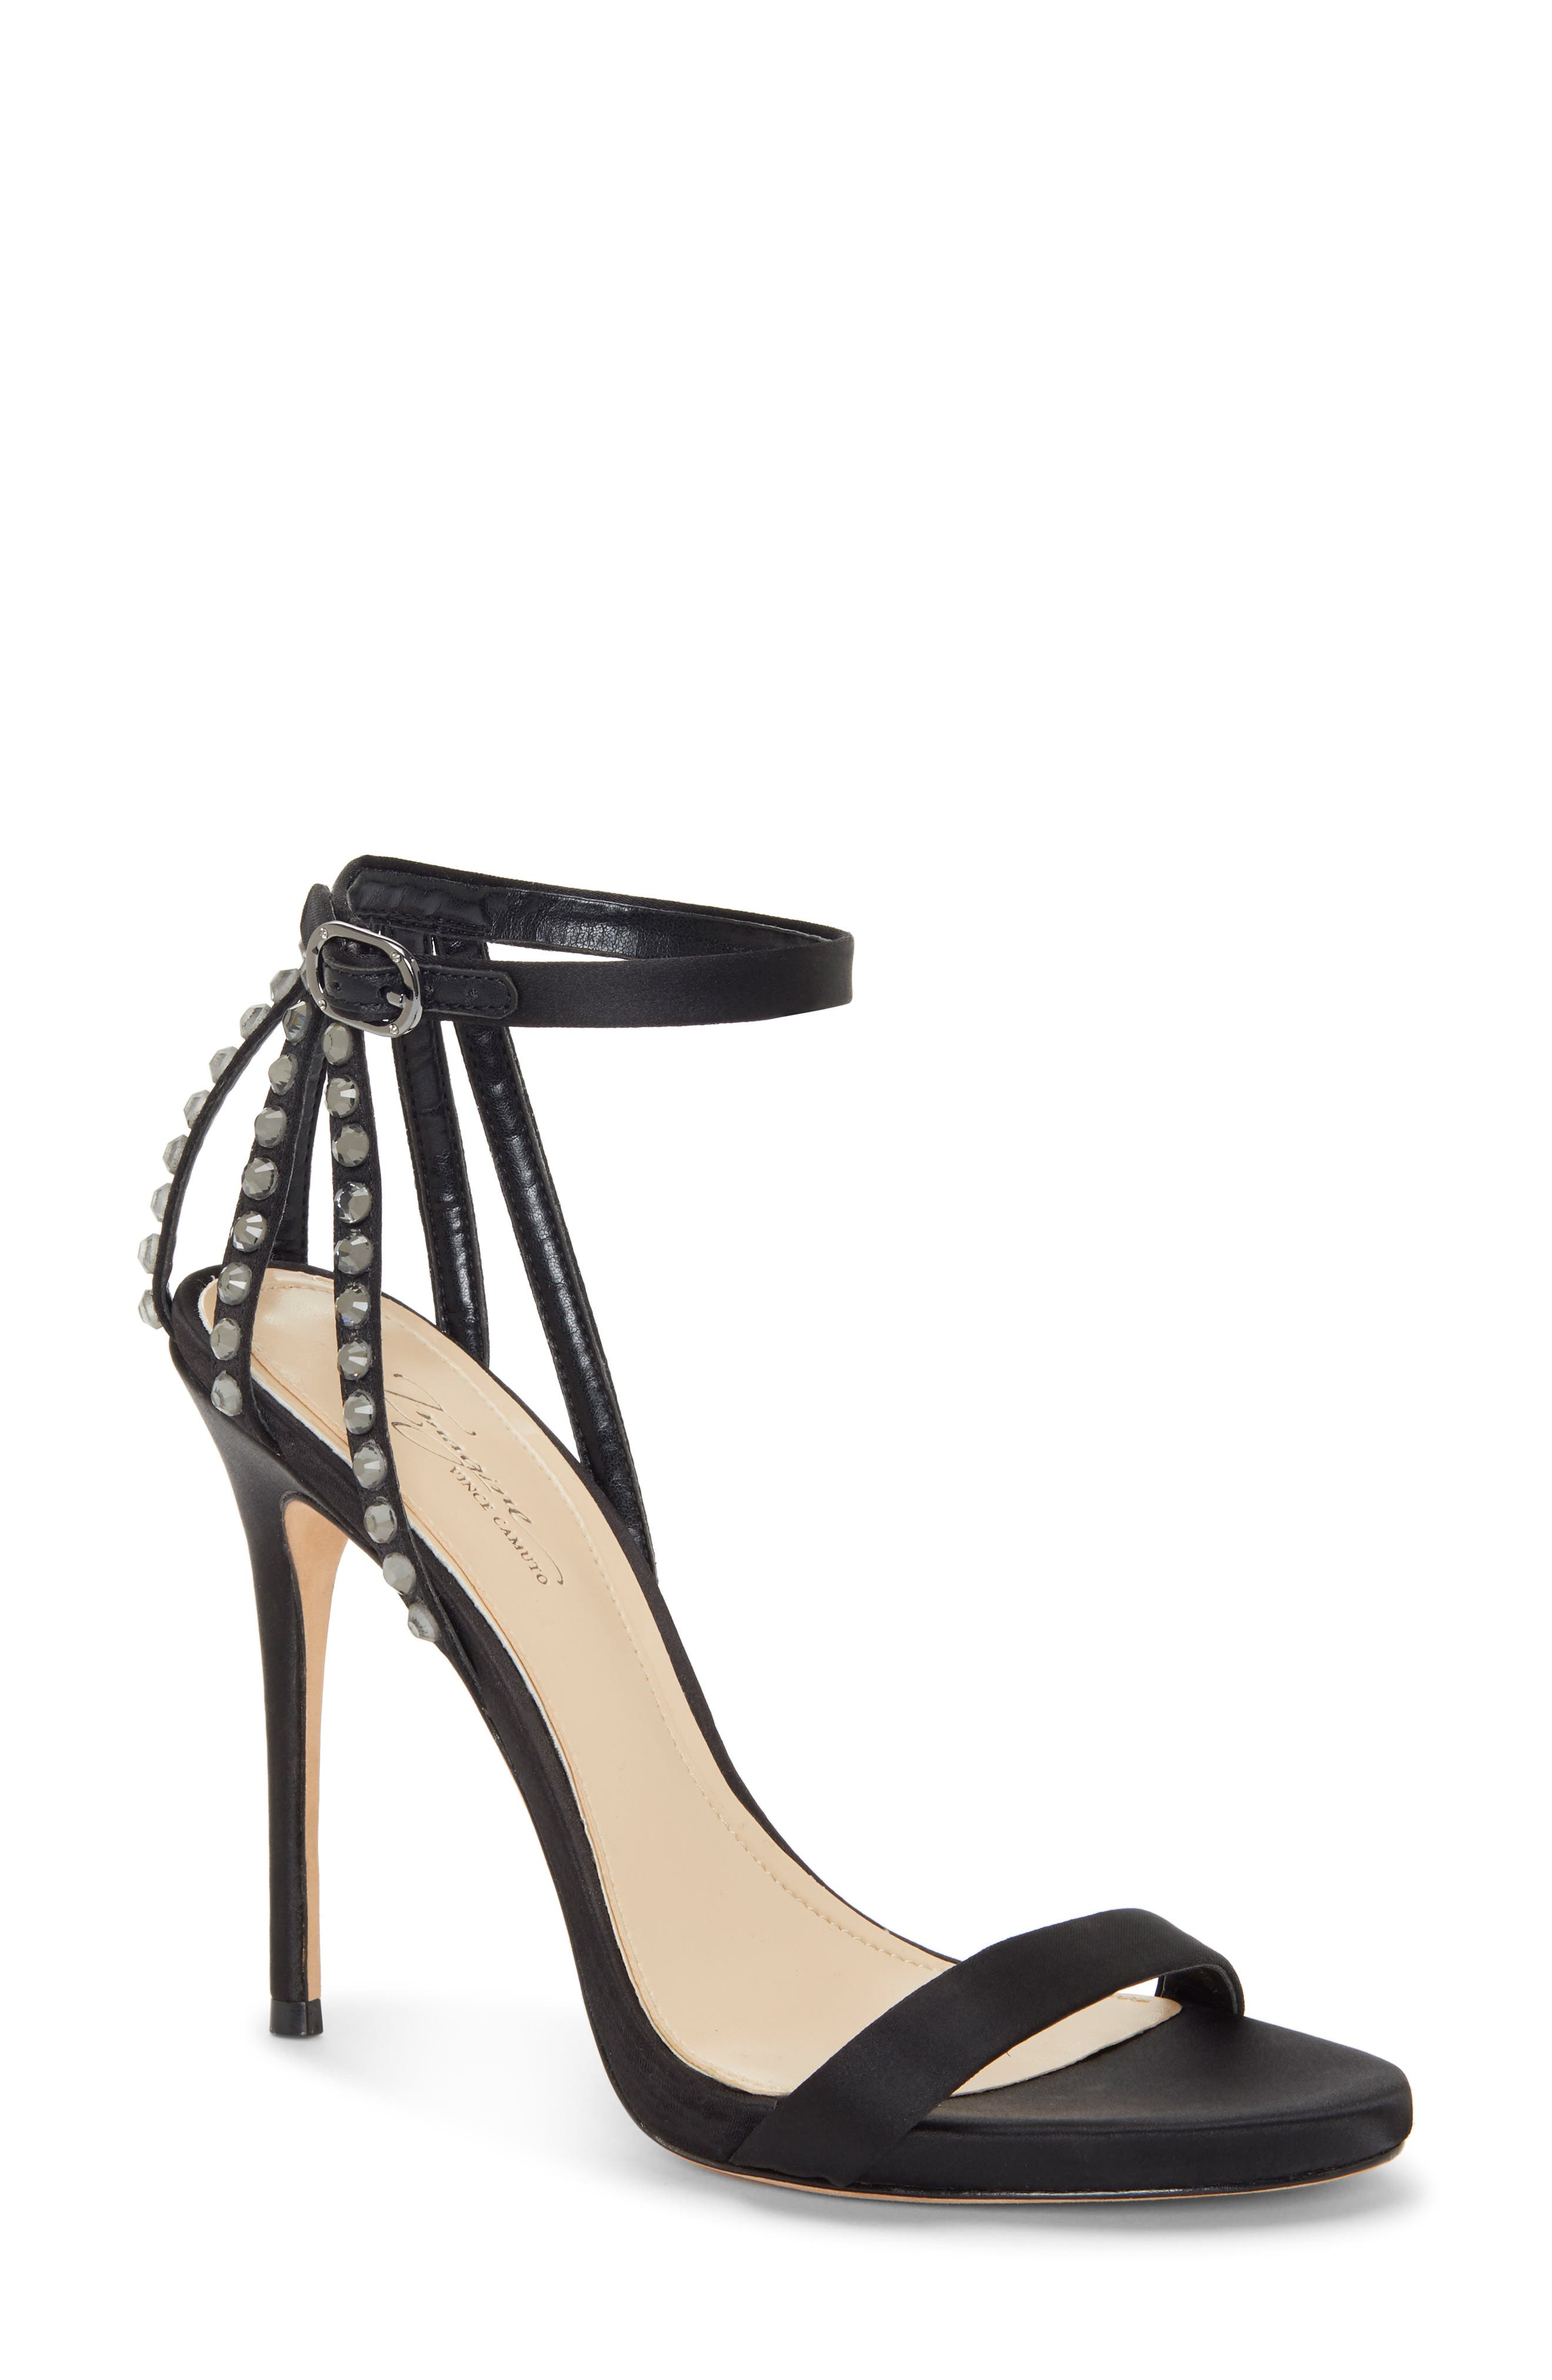 Imagine By Vince Camuto Daphee Crystal Embellished Sandal- Black